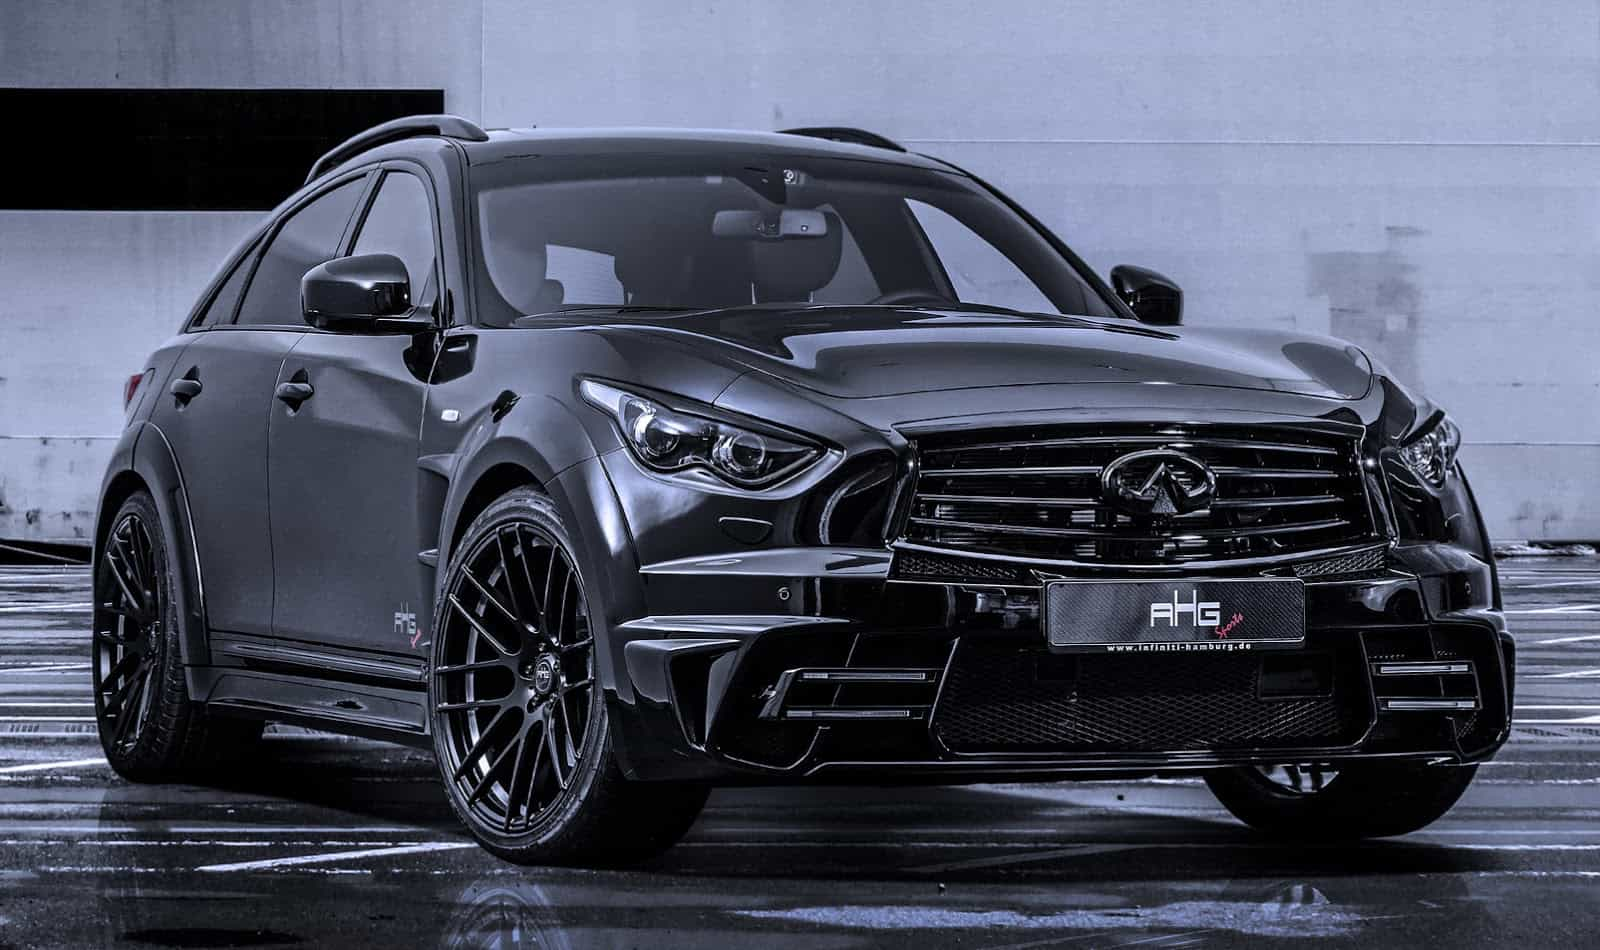 infiniti qx70 lr3 wide body kit by ahg sports unfinished manunfinished man. Black Bedroom Furniture Sets. Home Design Ideas